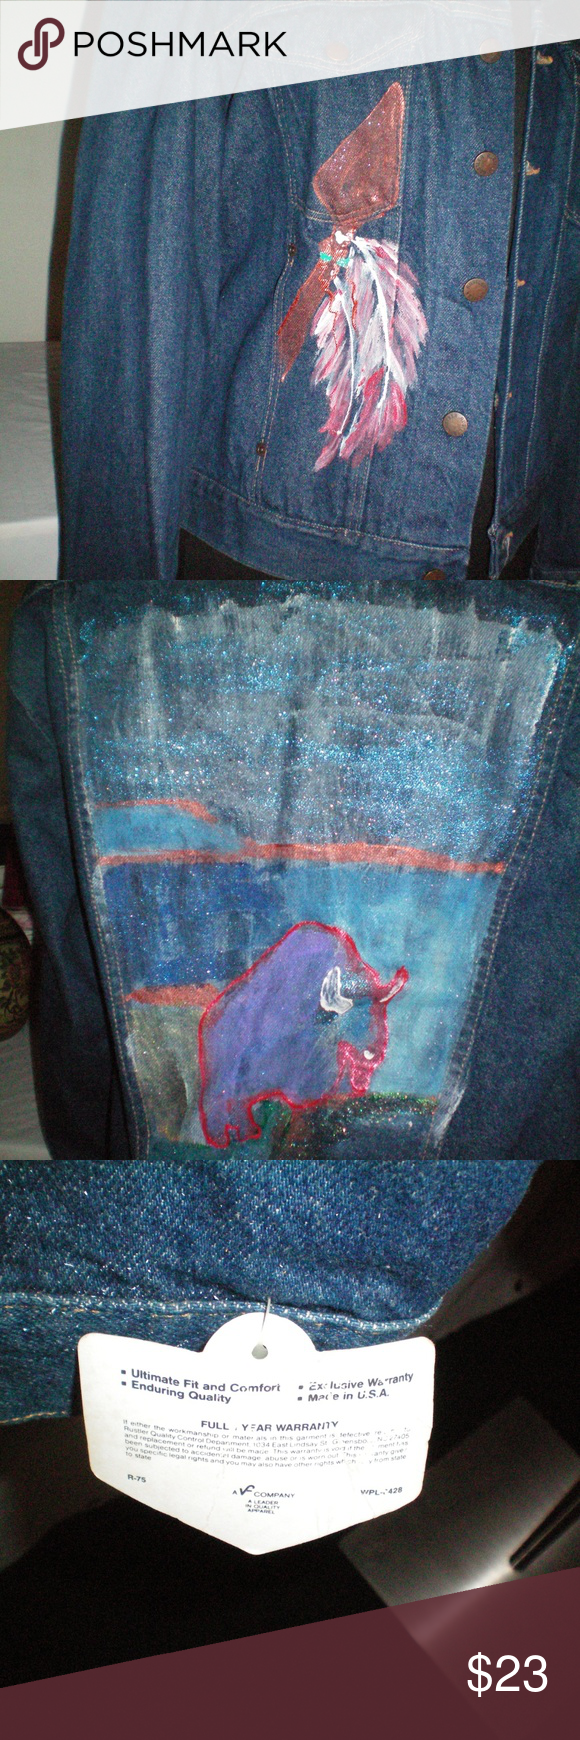 Rustler Women's Large Denim Jean Jacket Rustler Women's Large Denim Jean Jacket Buffalo/feather Mural On Back- SZ Large  Hand Painted Denim Blue Jean Jacket Womens Size Large. Condition is new with tags  Rustler Woman's Large Denim Jean Jacket Buffalo Mural On Back  Size Large Rustler Jackets & Coats Jean Jackets